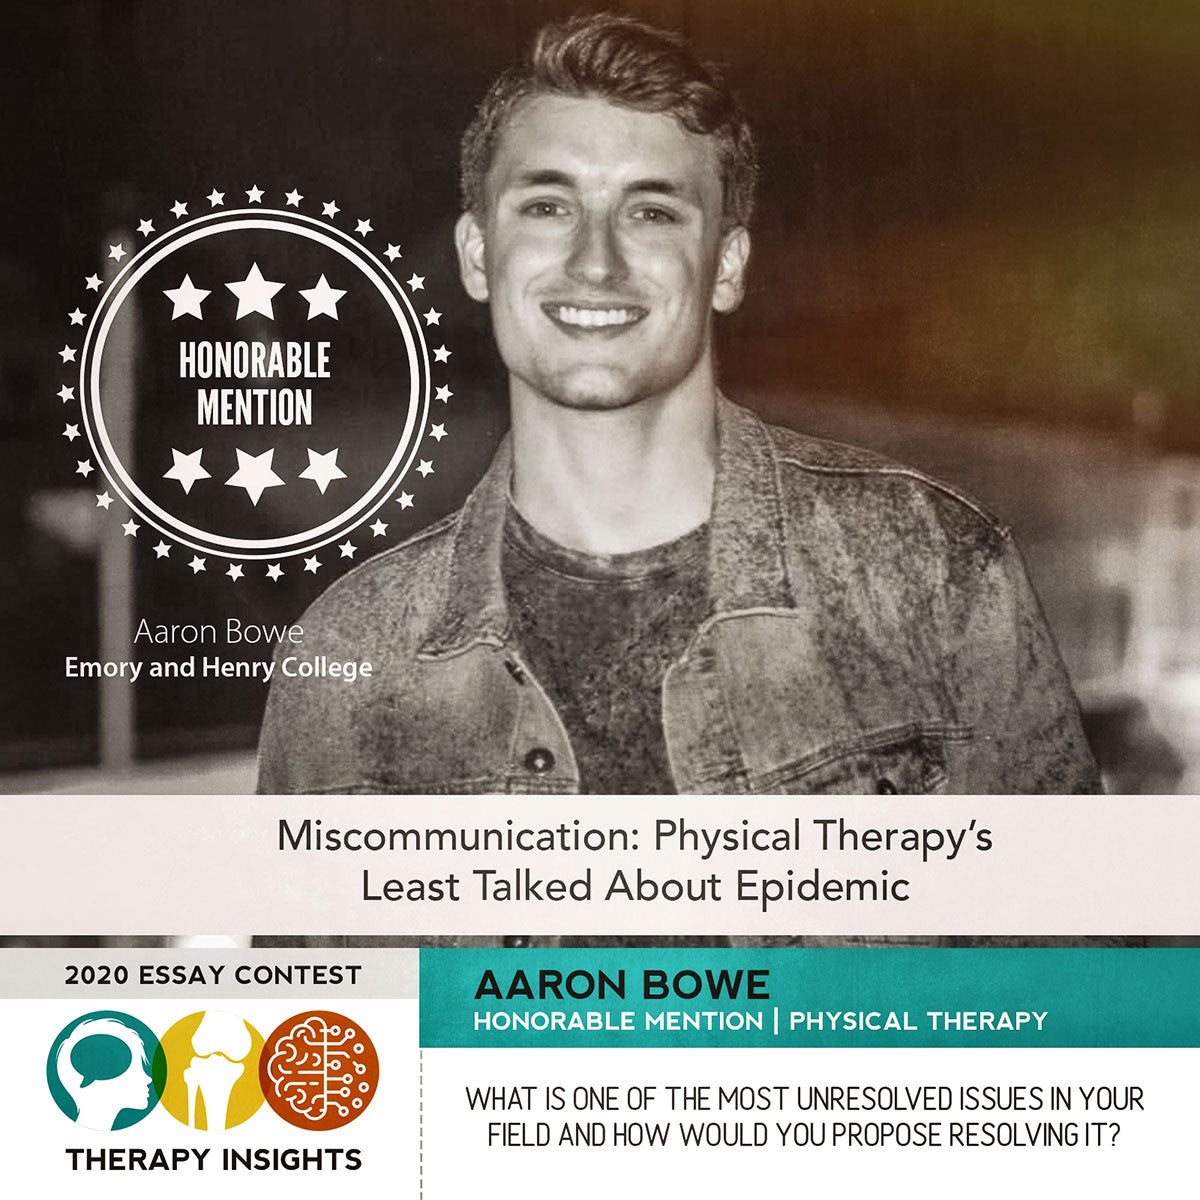 2020 Essay Contest - Honorable Mention: Miscommunication: Physical Therapy's Least Talked About Epidemic by Aaron Bowe